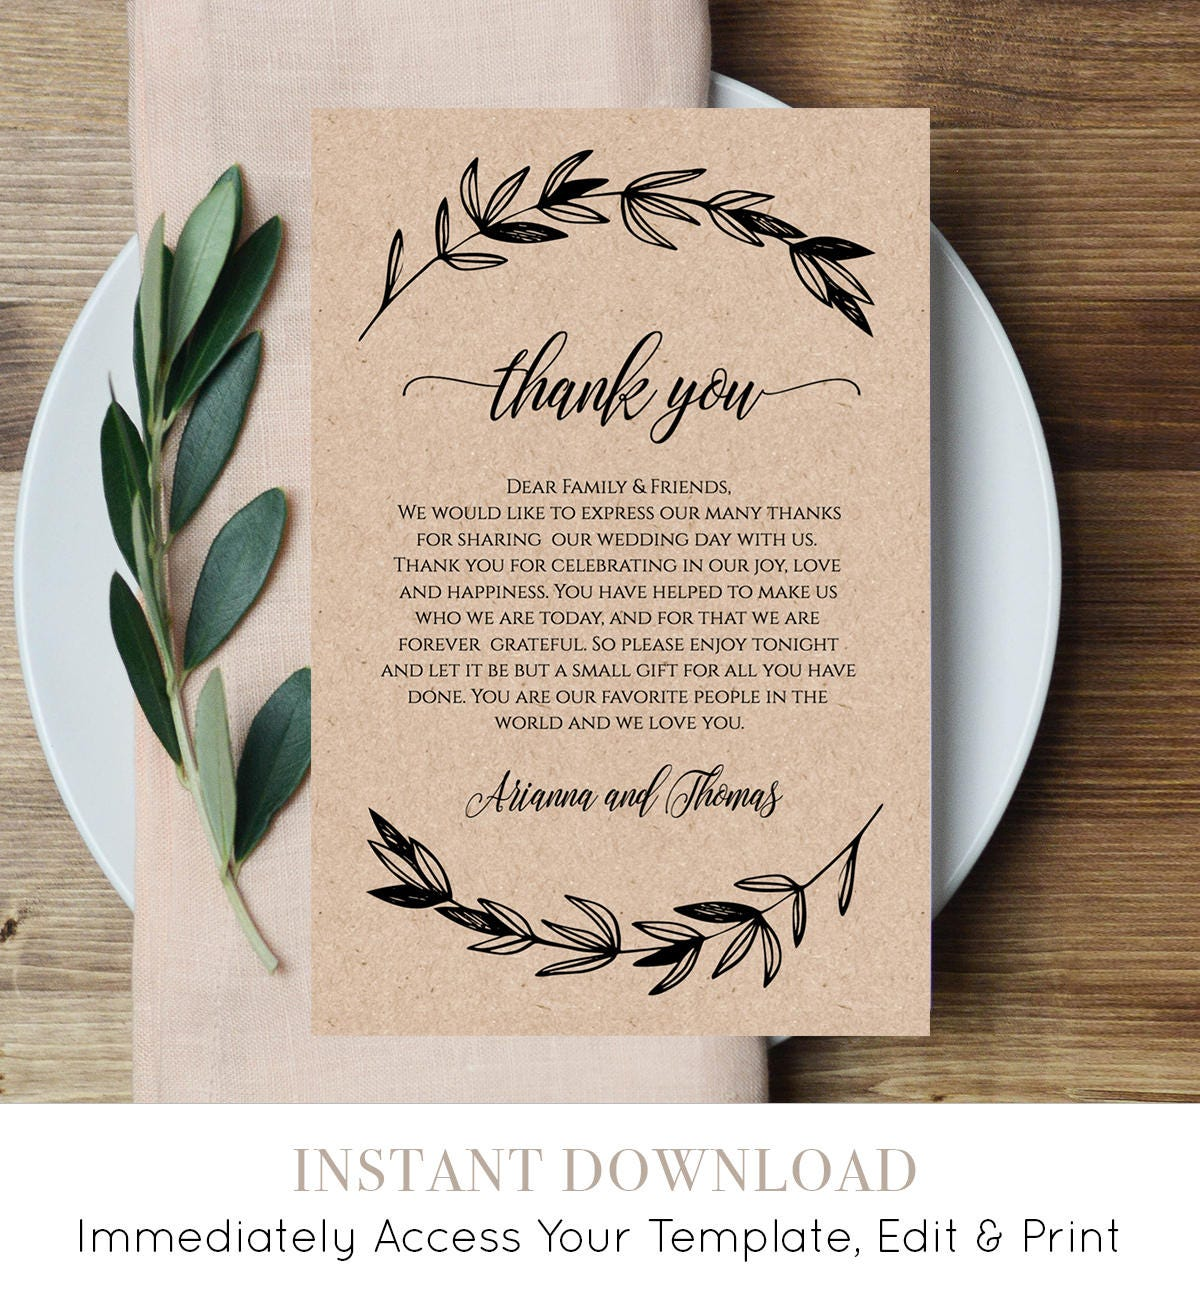 Thank You Letter For Wedding Gift: Printable Wedding Thank You Letter, Reception Thank You